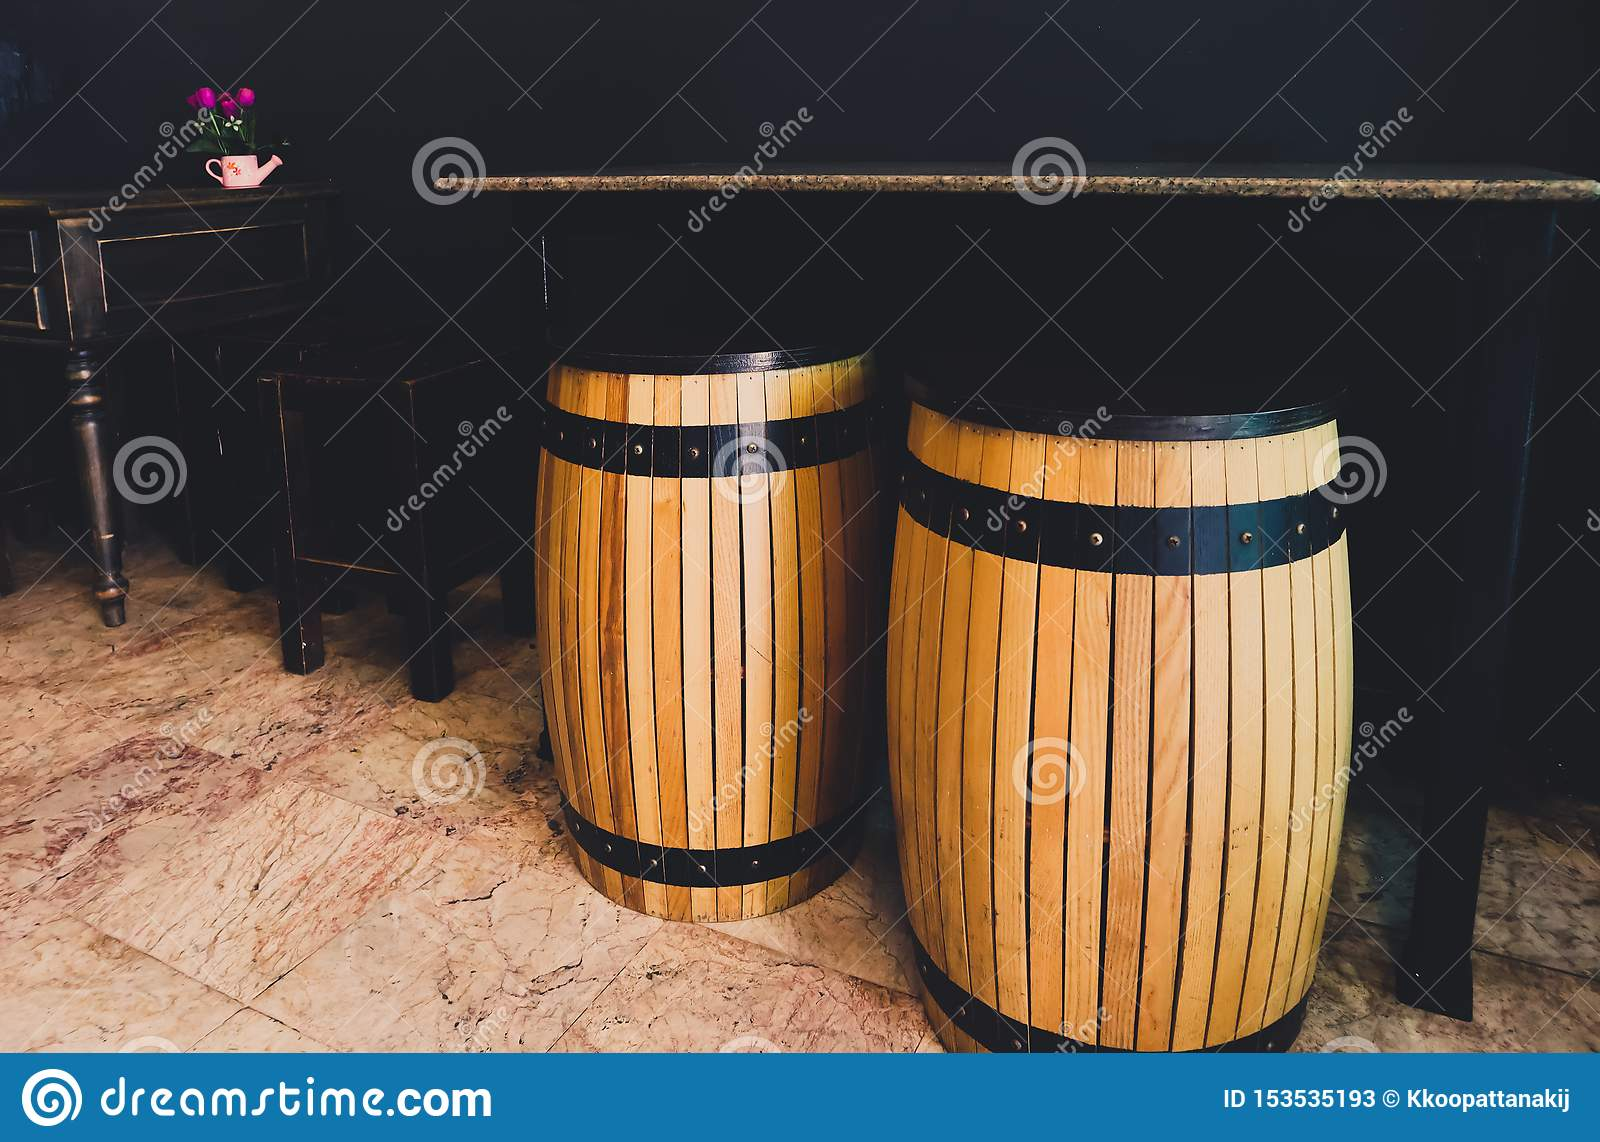 The Wooden Barrel As Seats Place With Marble Table The Set Of Black Antique Wooden Chairs And Desk In The Nearby The Interior Stock Image Image Of Coffee Place 153535193